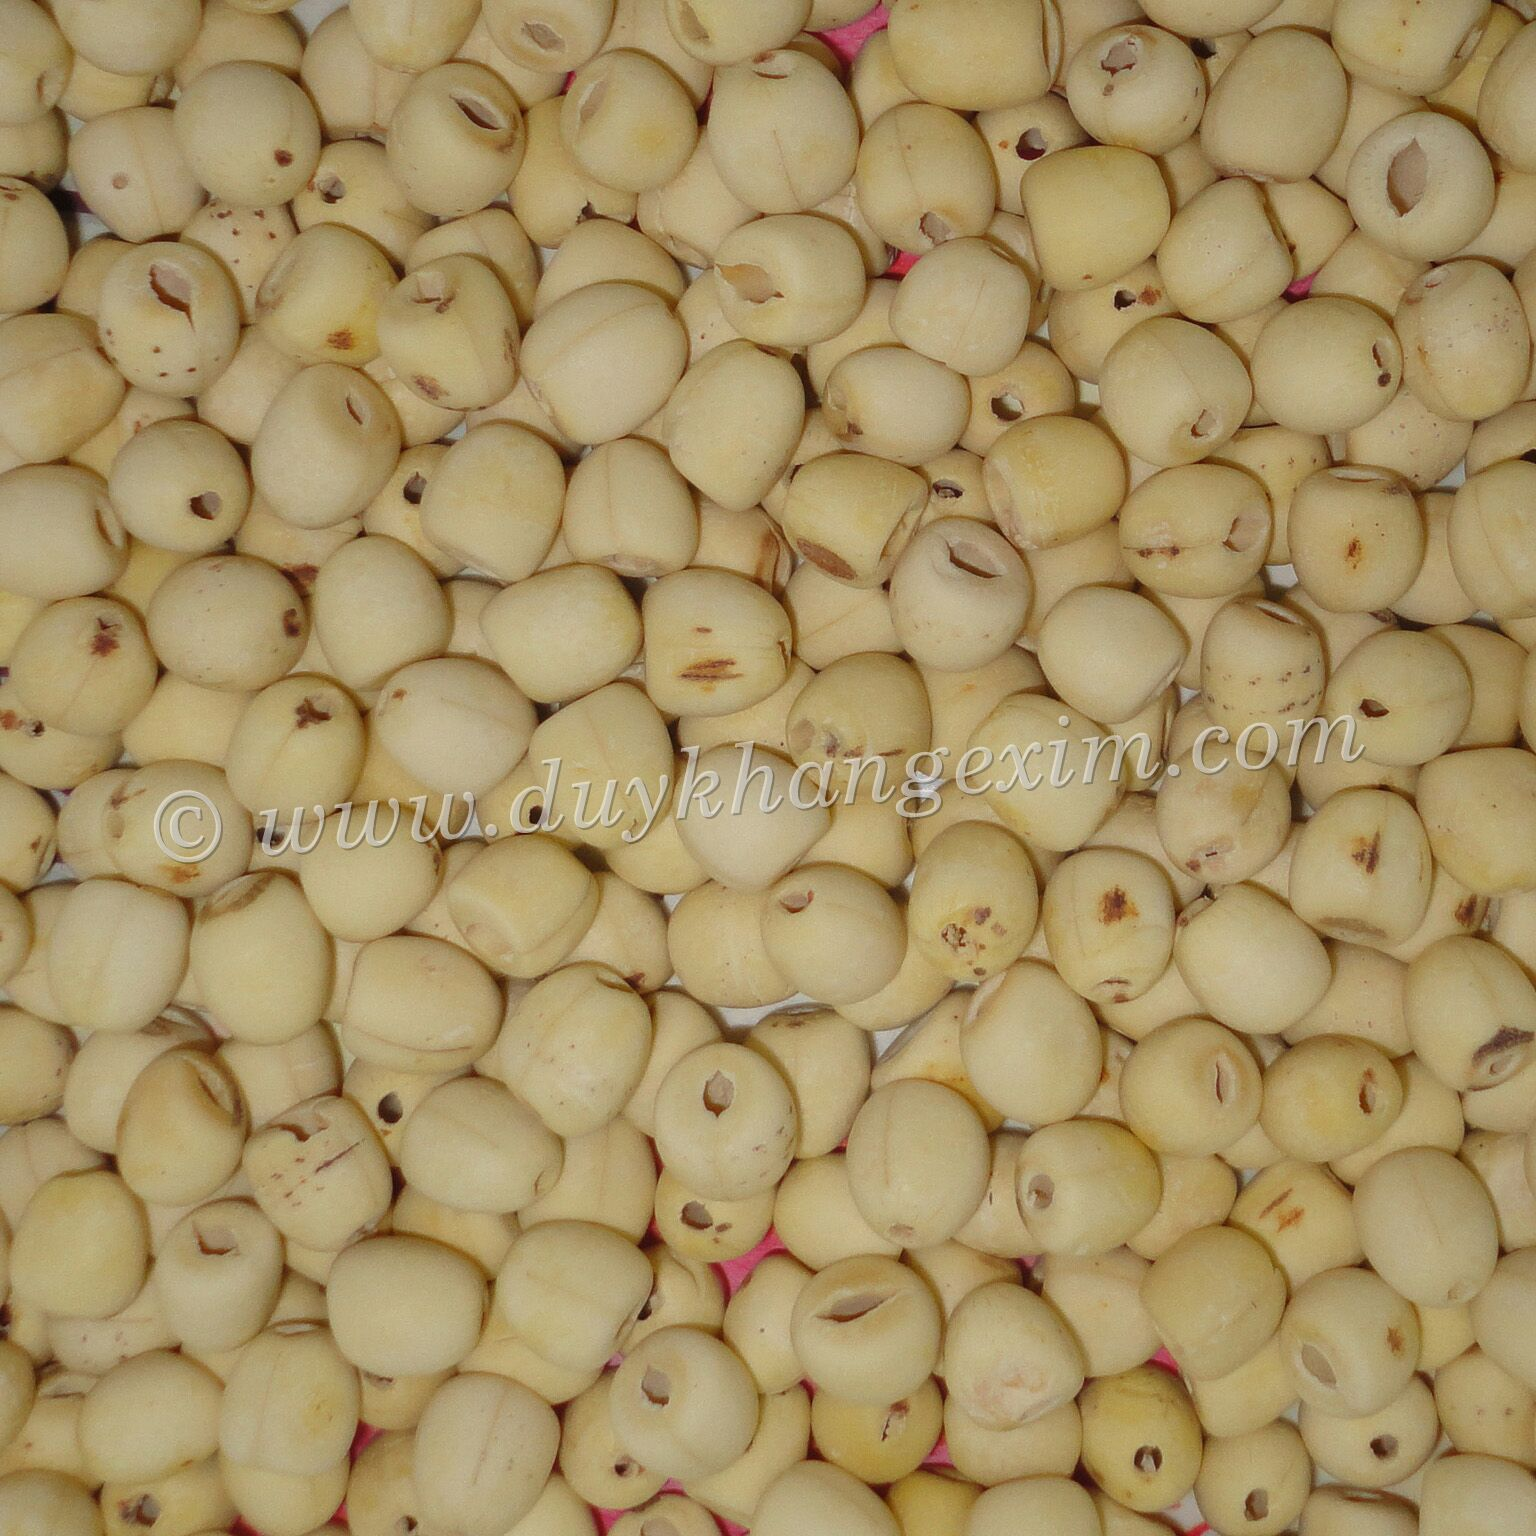 WHITE LOTUS SEEDS, BEST PRICE, HIGH QUALITY